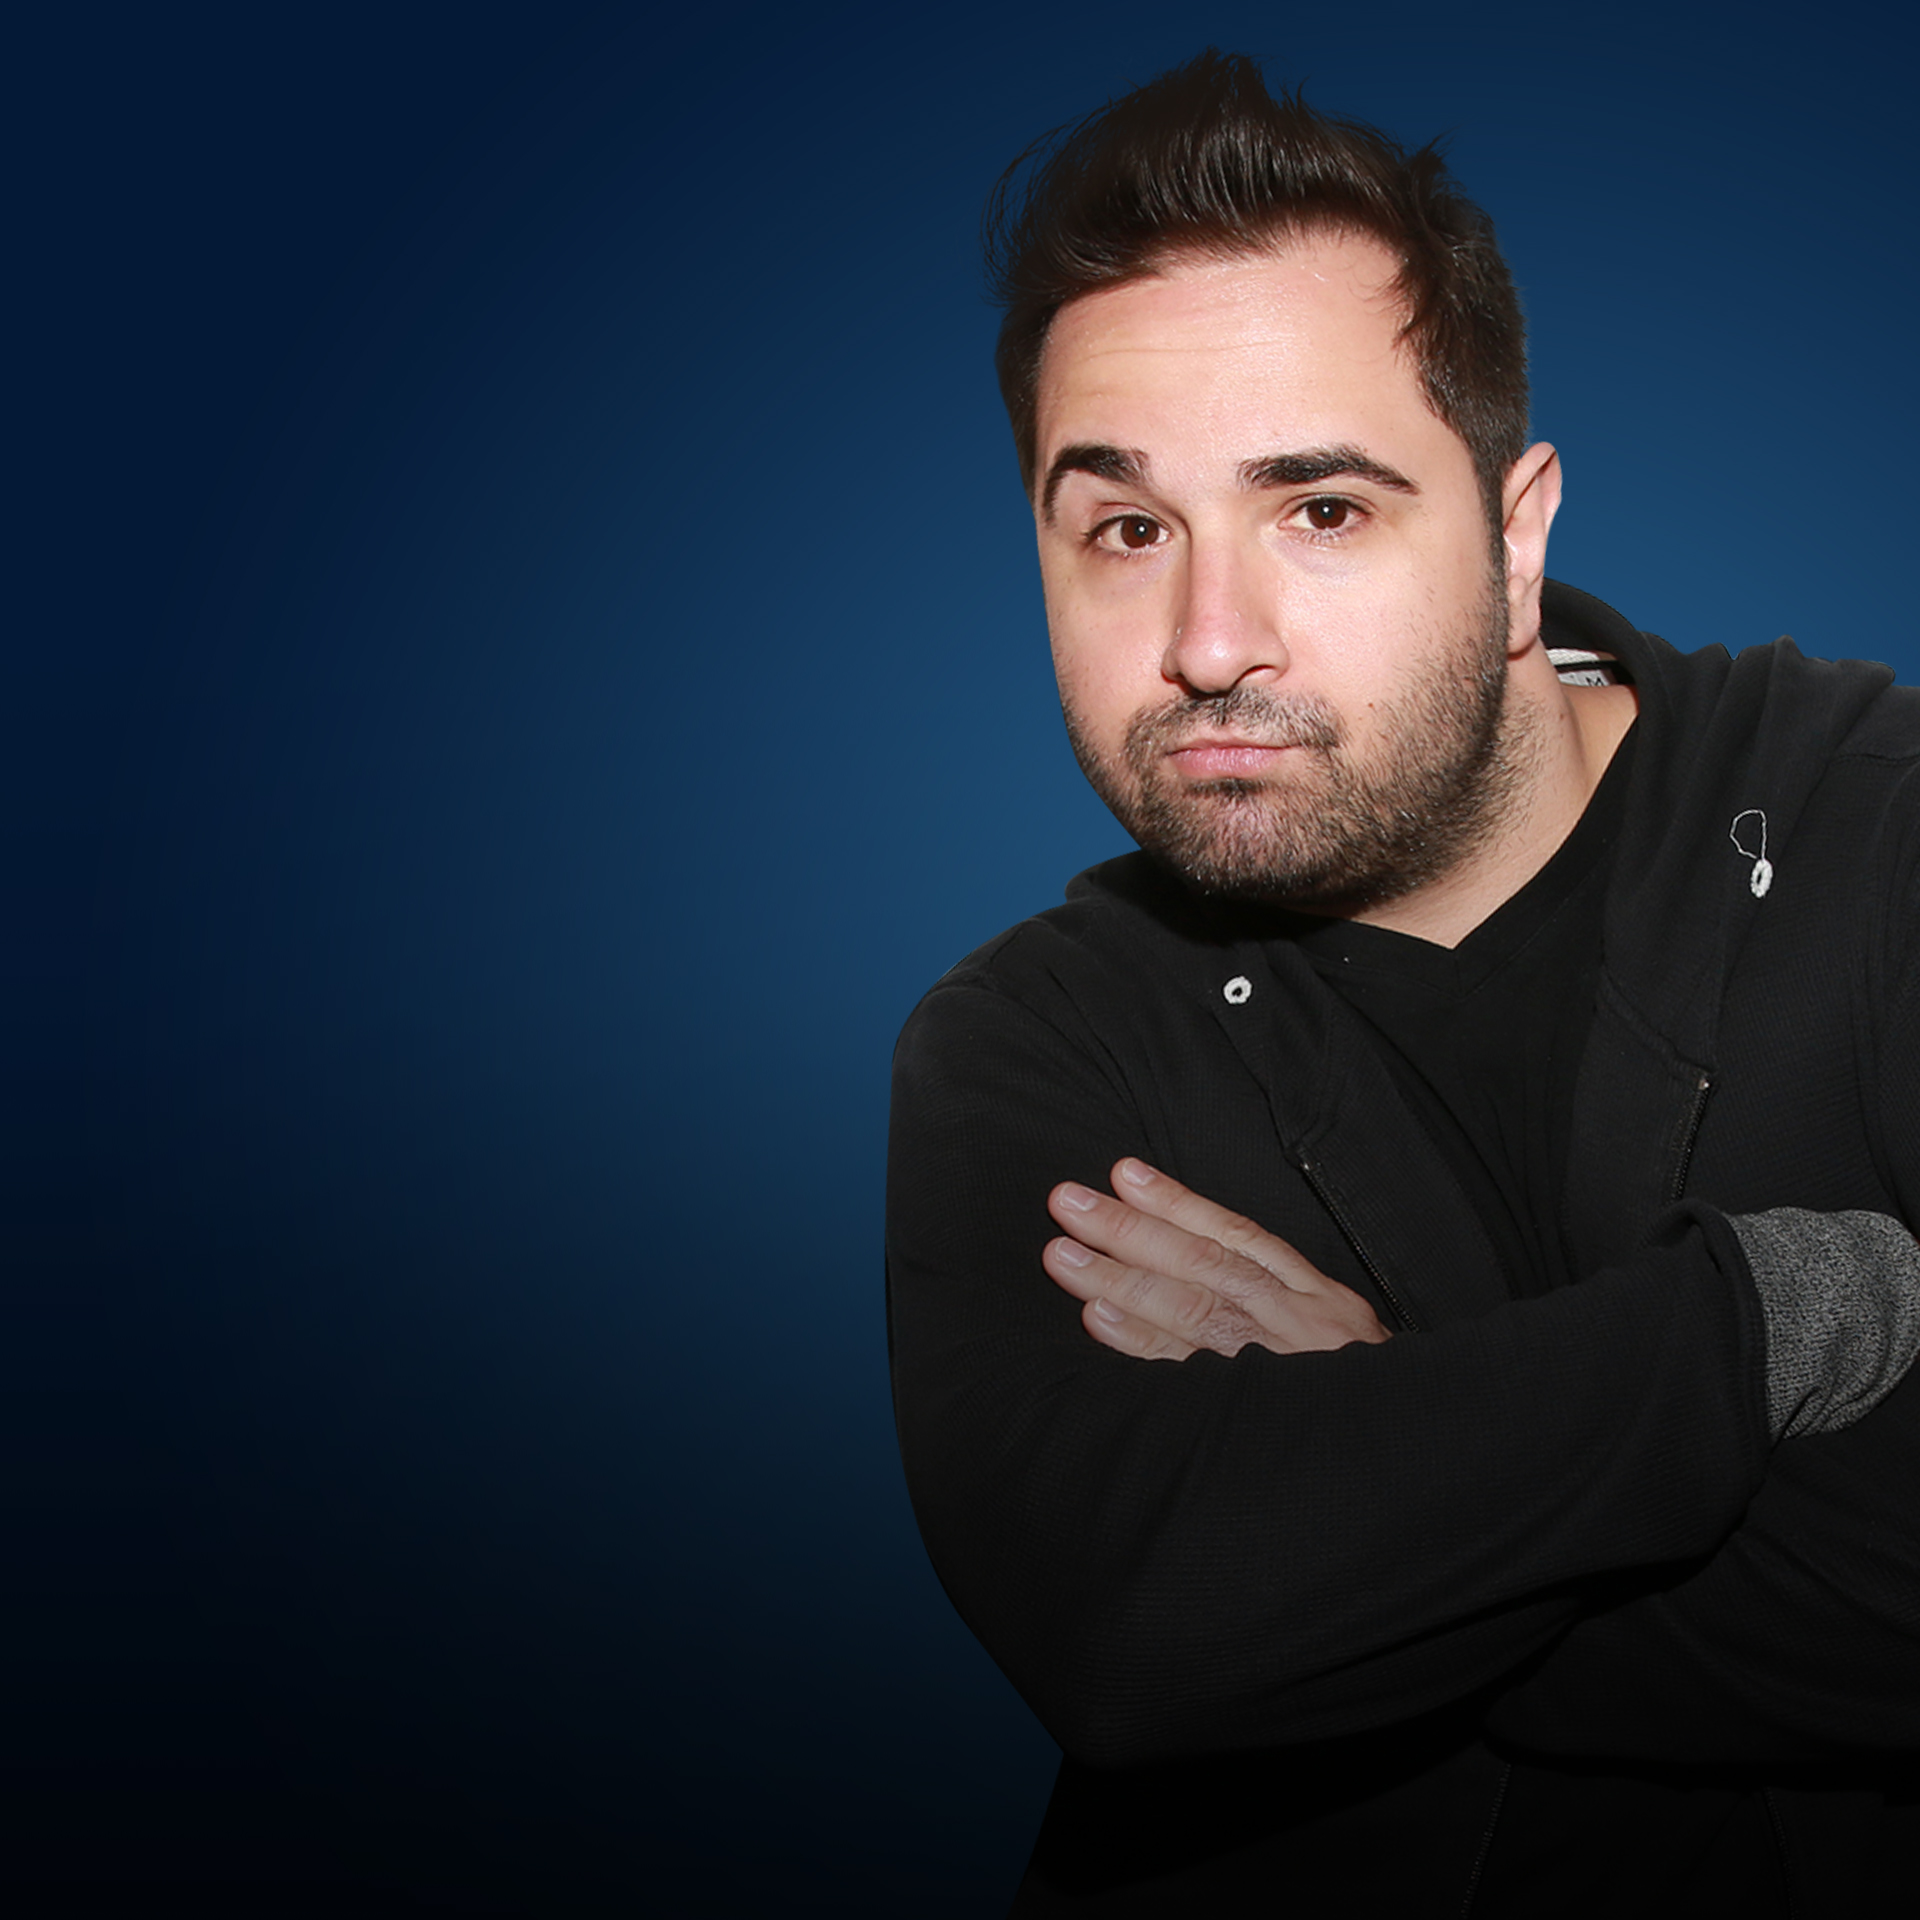 SiriusXM Hits 1 with Mikey Piff